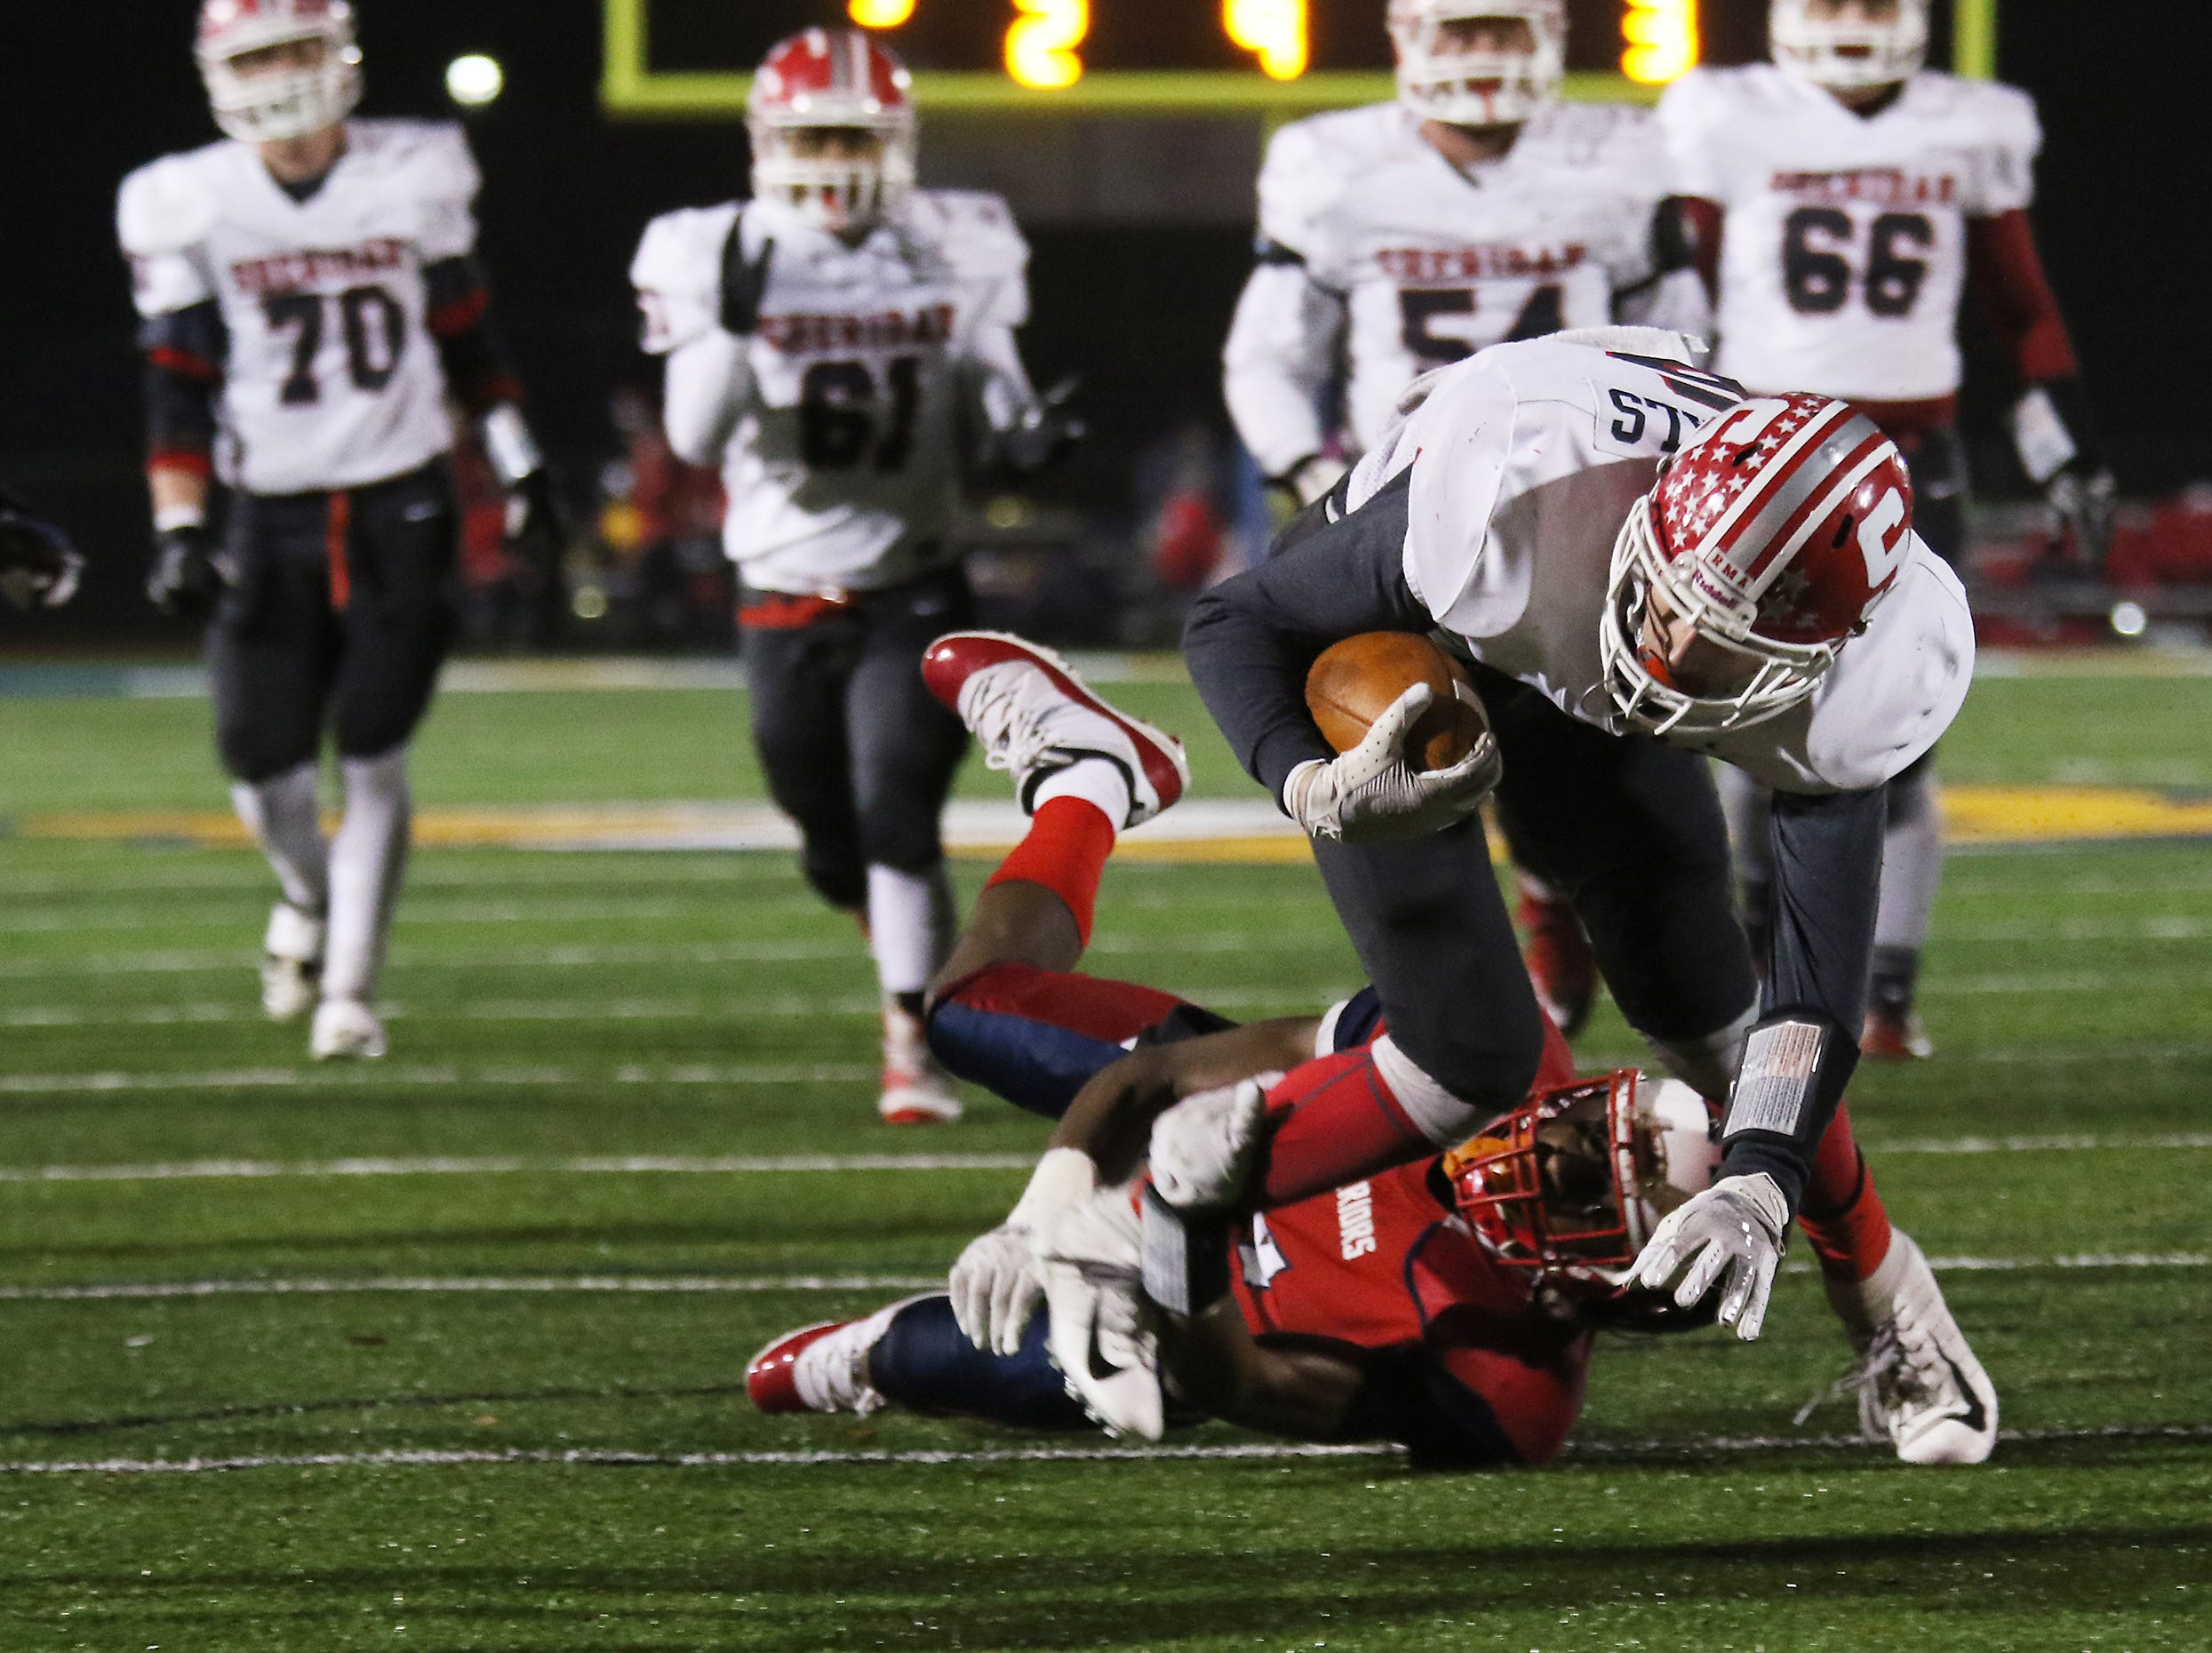 A Sheridan receiver lunges for extra yardage against Eastmoor.